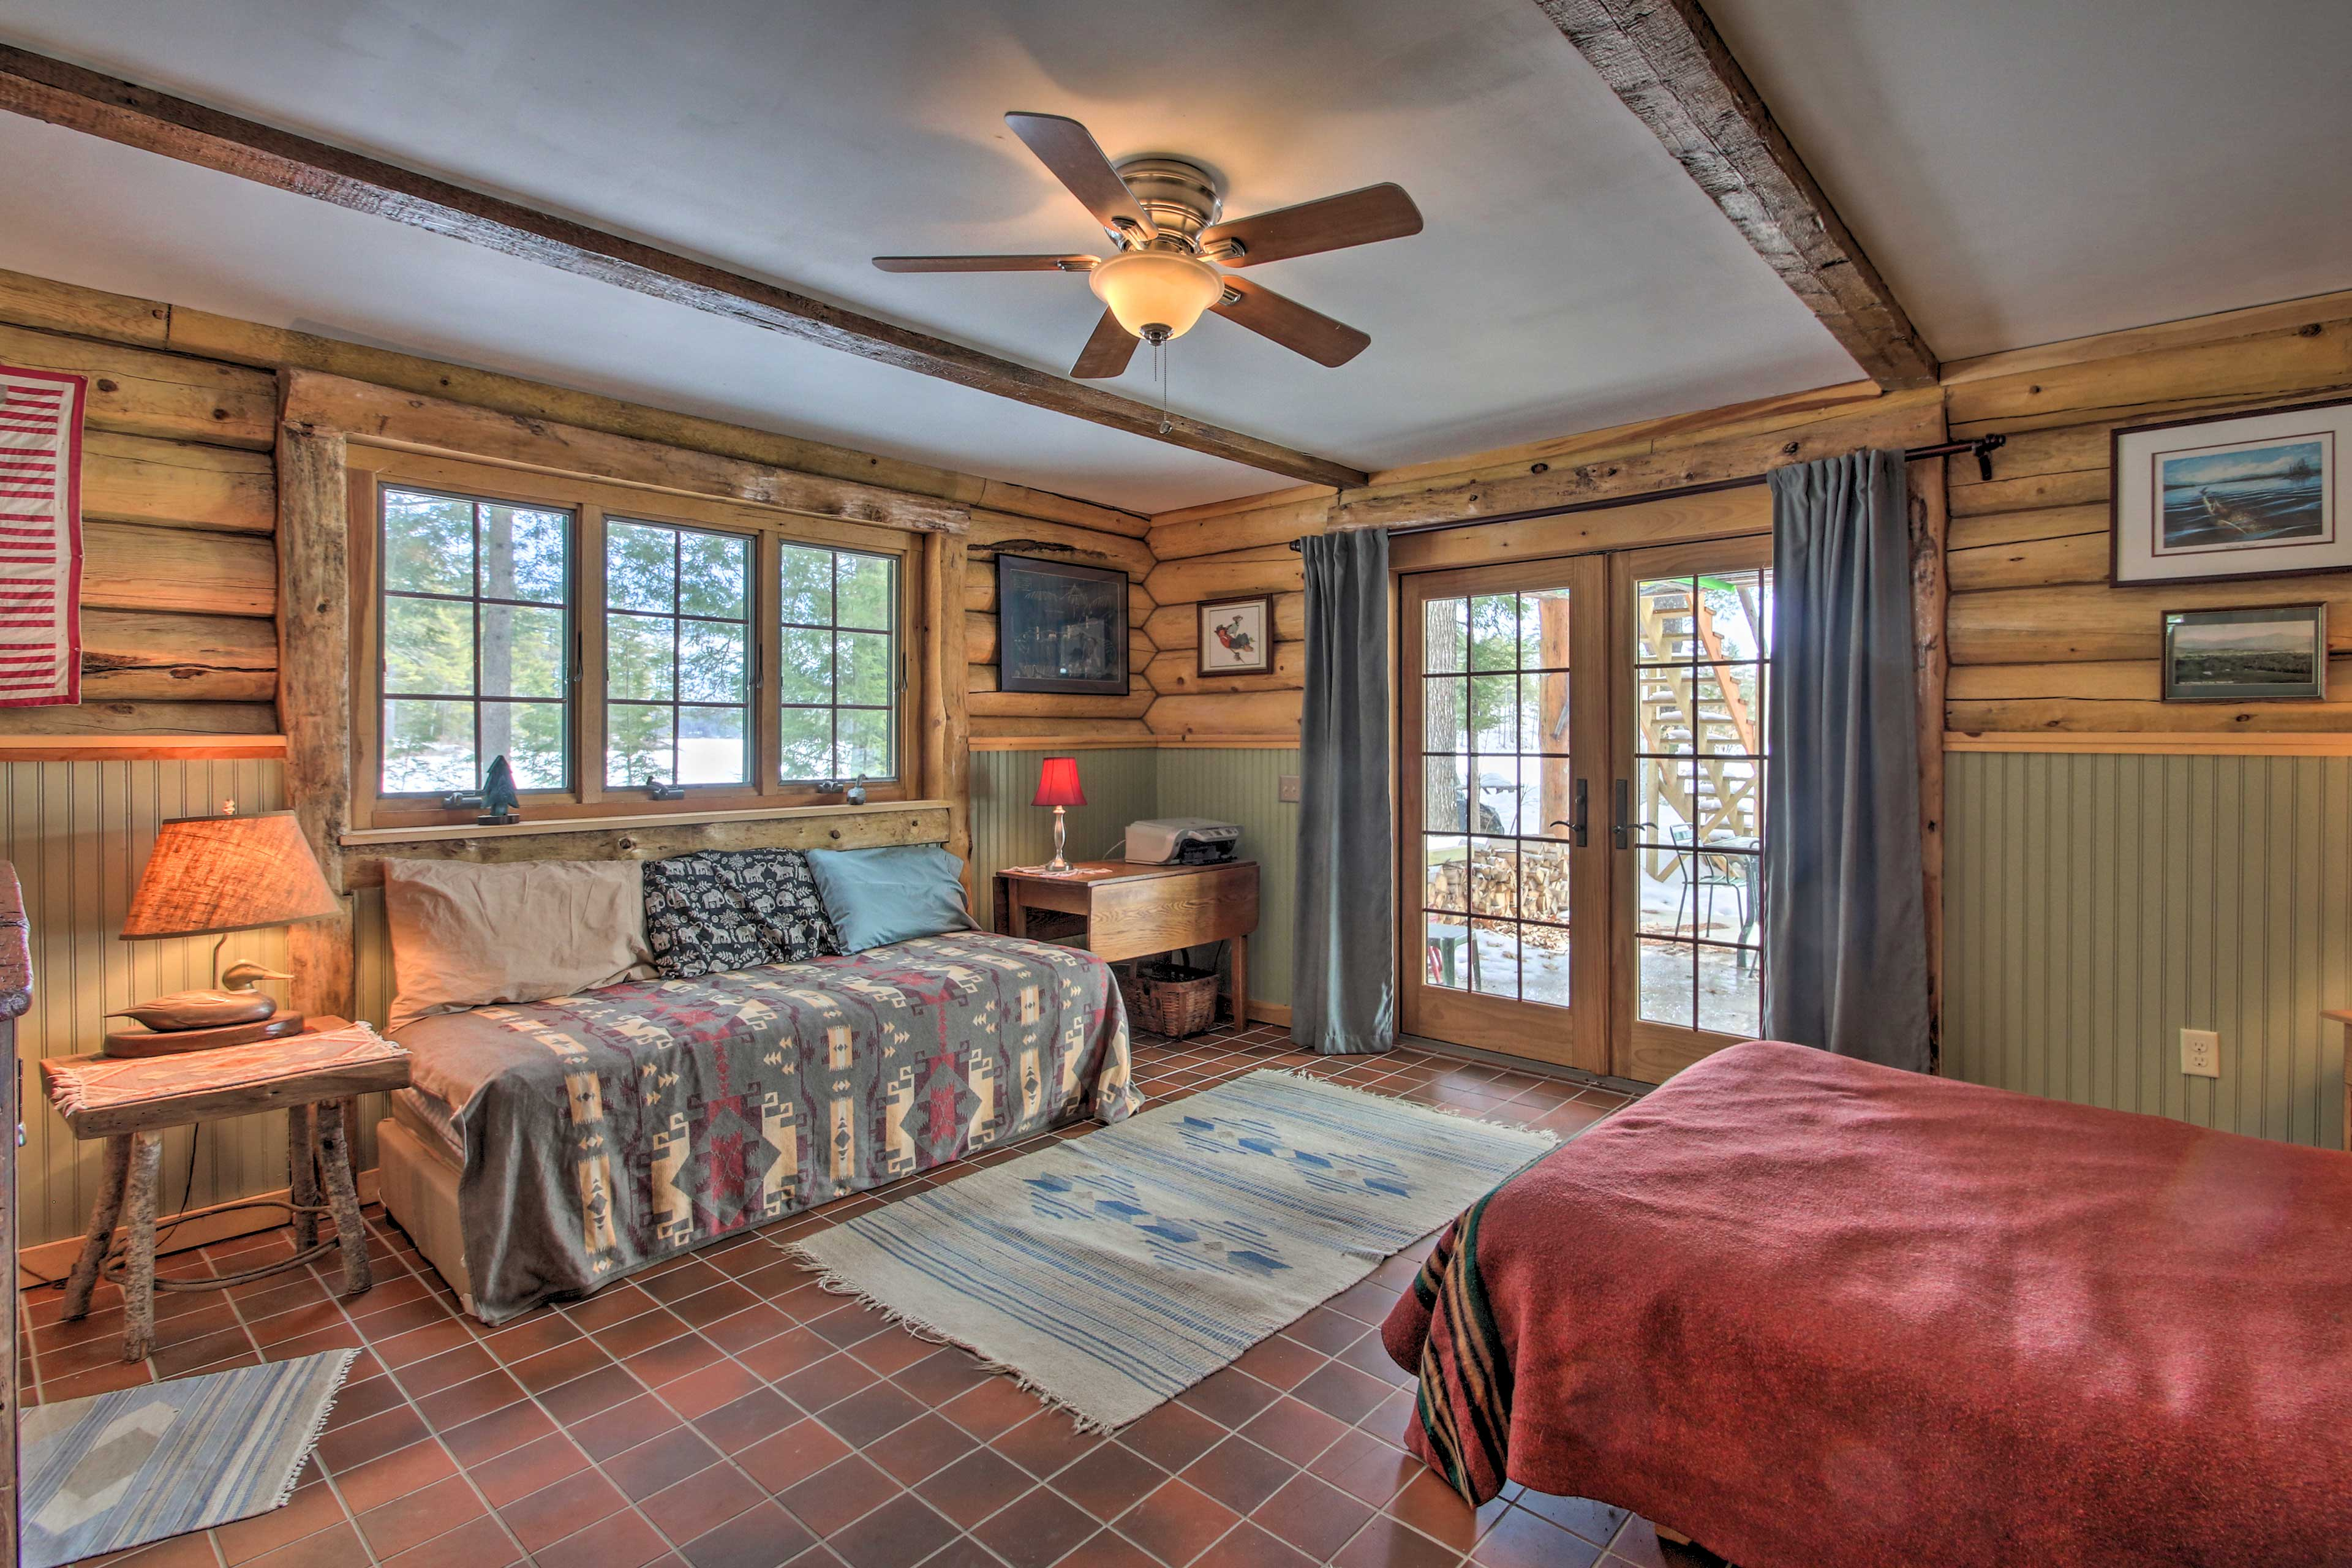 This bedroom is home to a twin and queen bed.